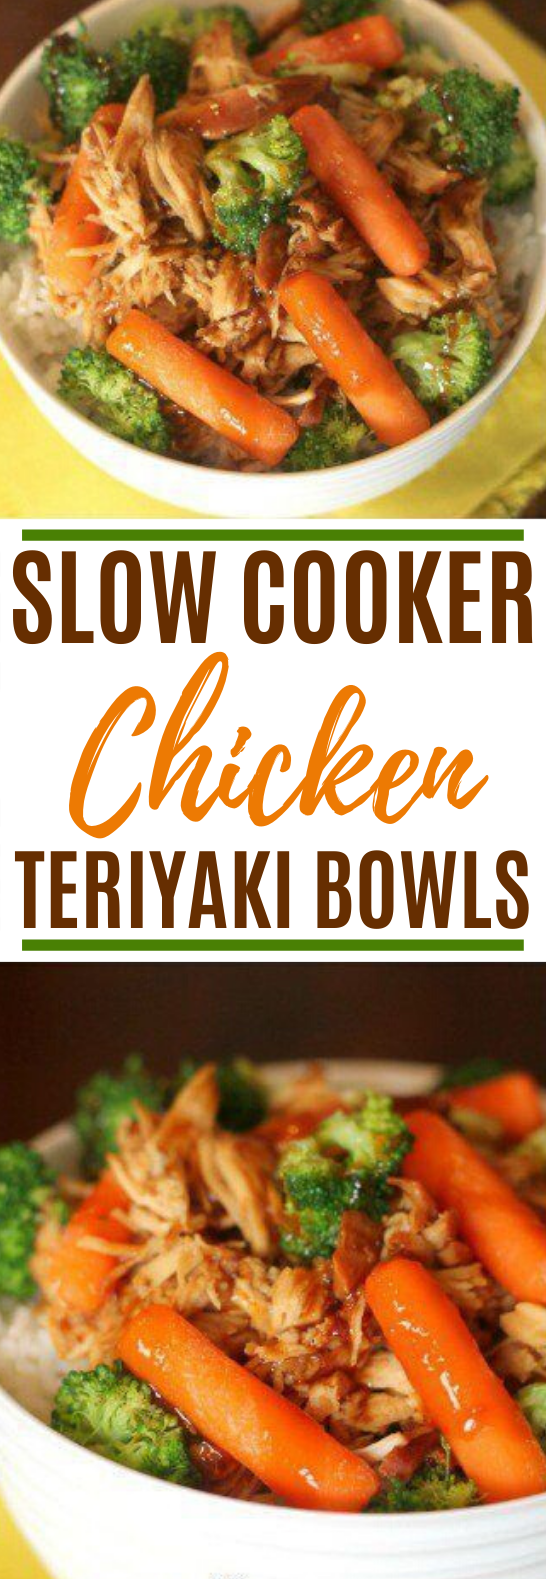 Slow Cooker Chicken Teriyaki Bowls #dinner #recipes #slowcooker #chicken #mealprep